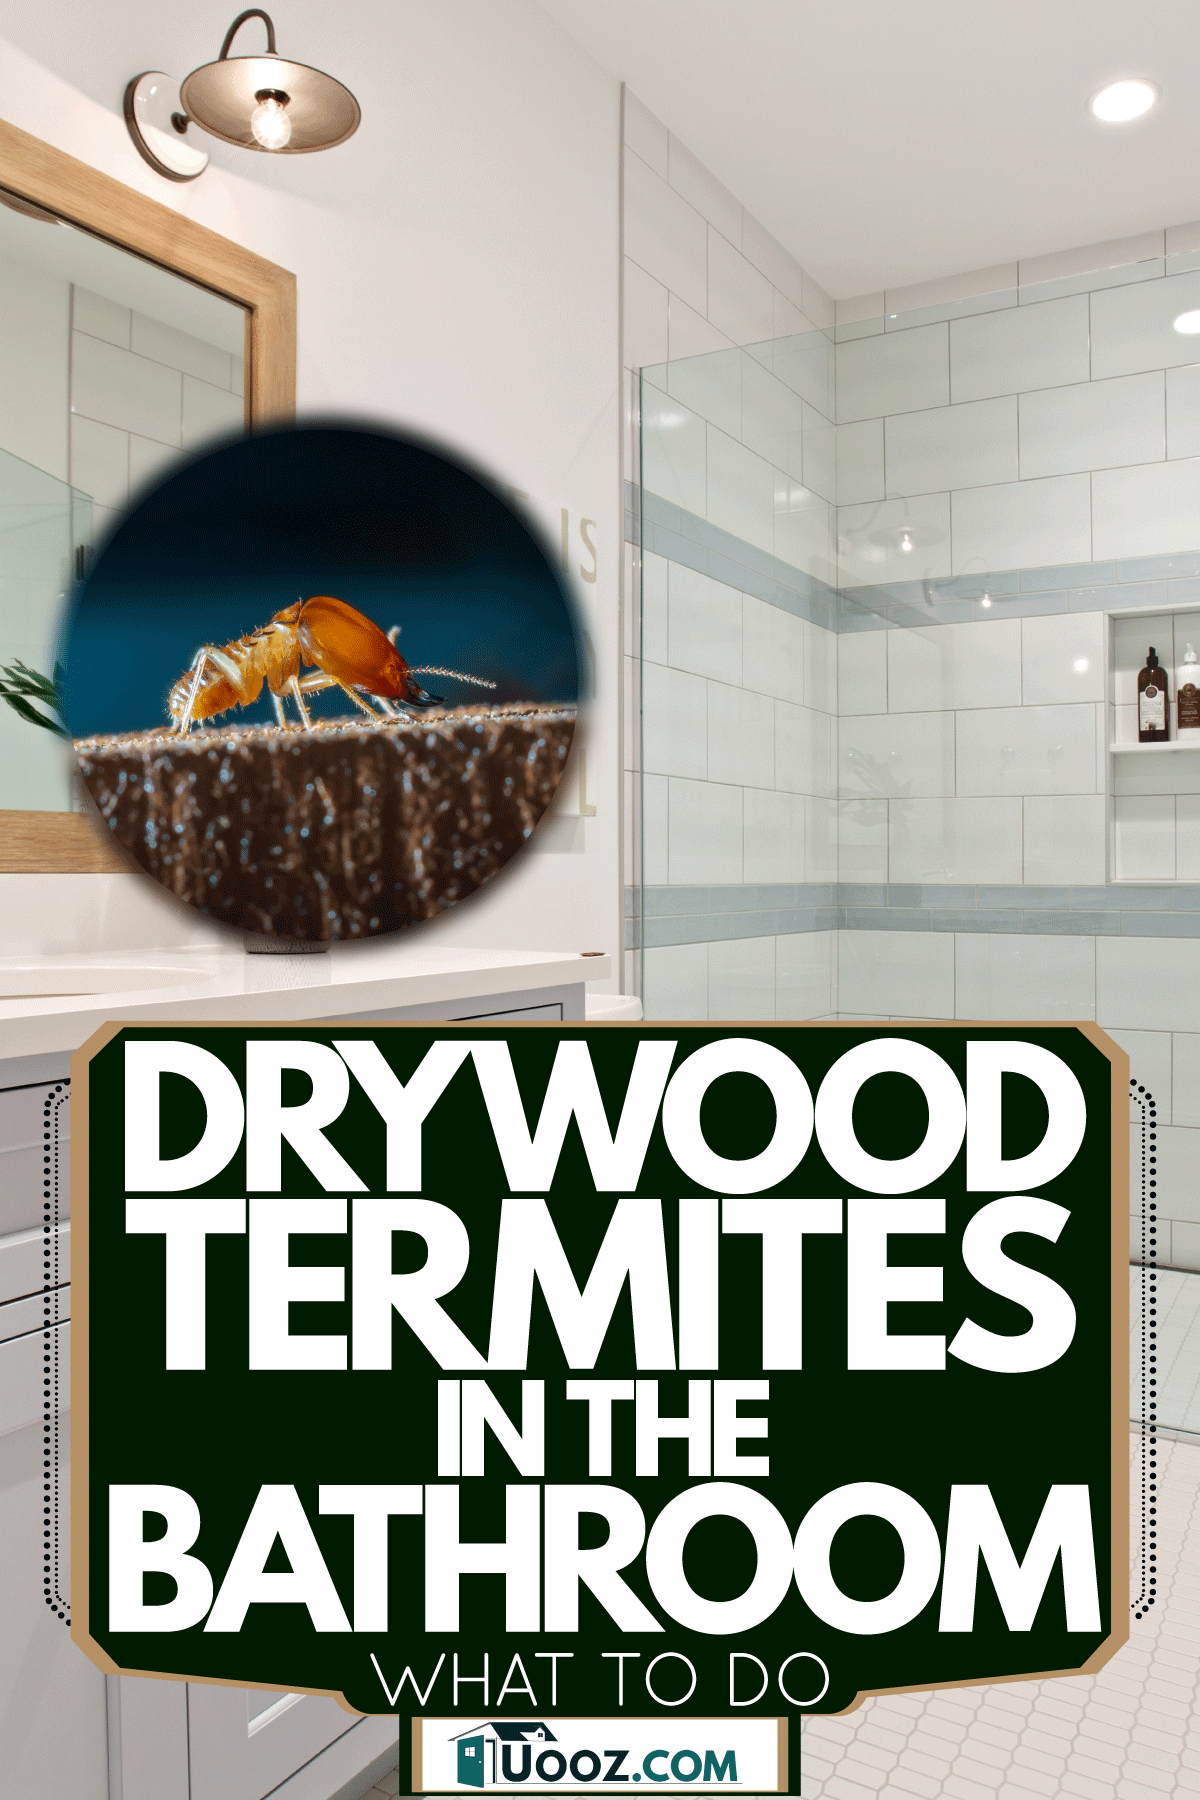 Interior of a modern contemporary bathroom with a glass walled shower and a white painted bathroom cabinetry, Drywood Termites In The Bathroom - What To do?